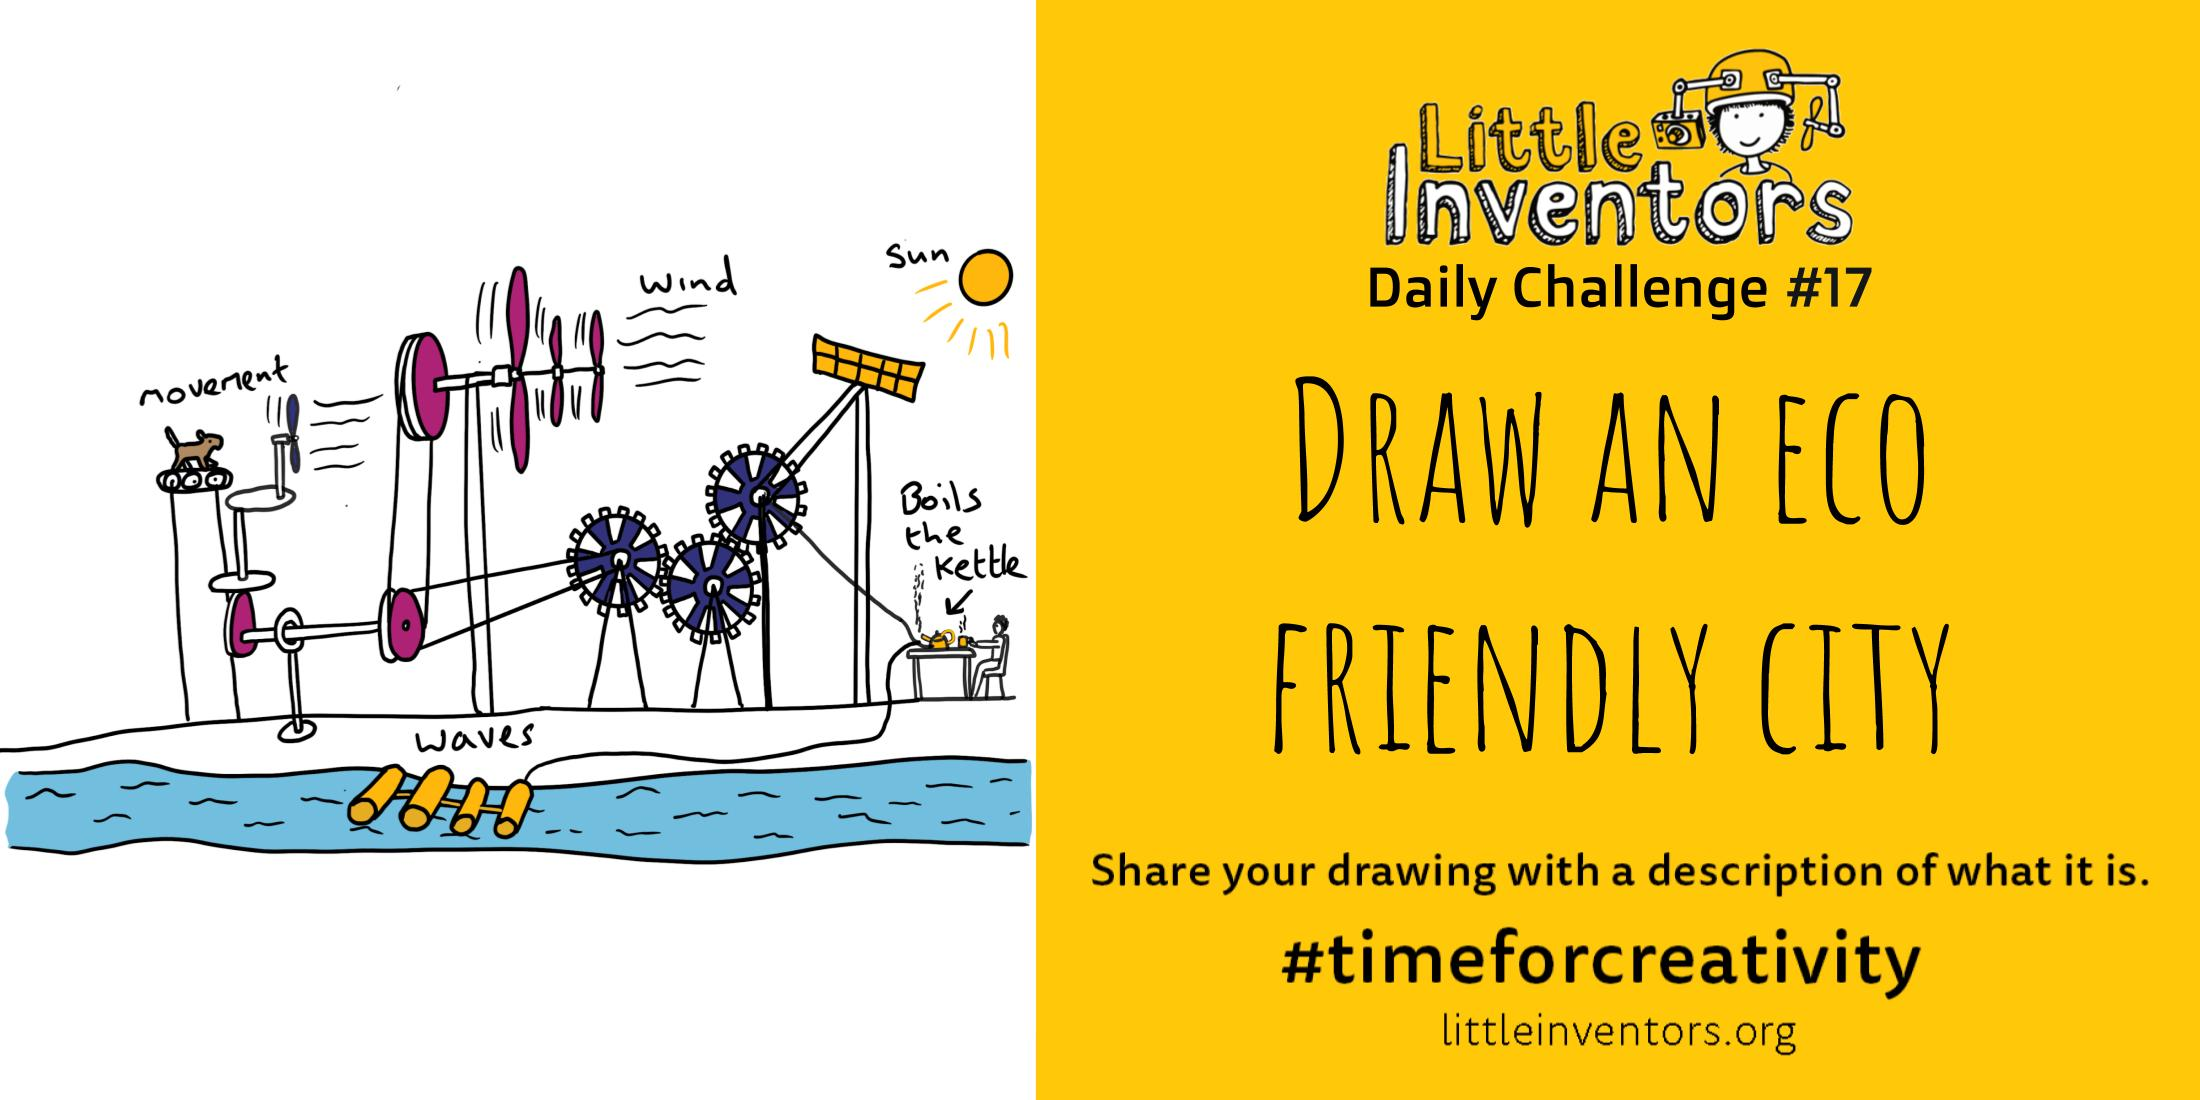 Little Inventors Challenge 17: Draw an eco friendly city